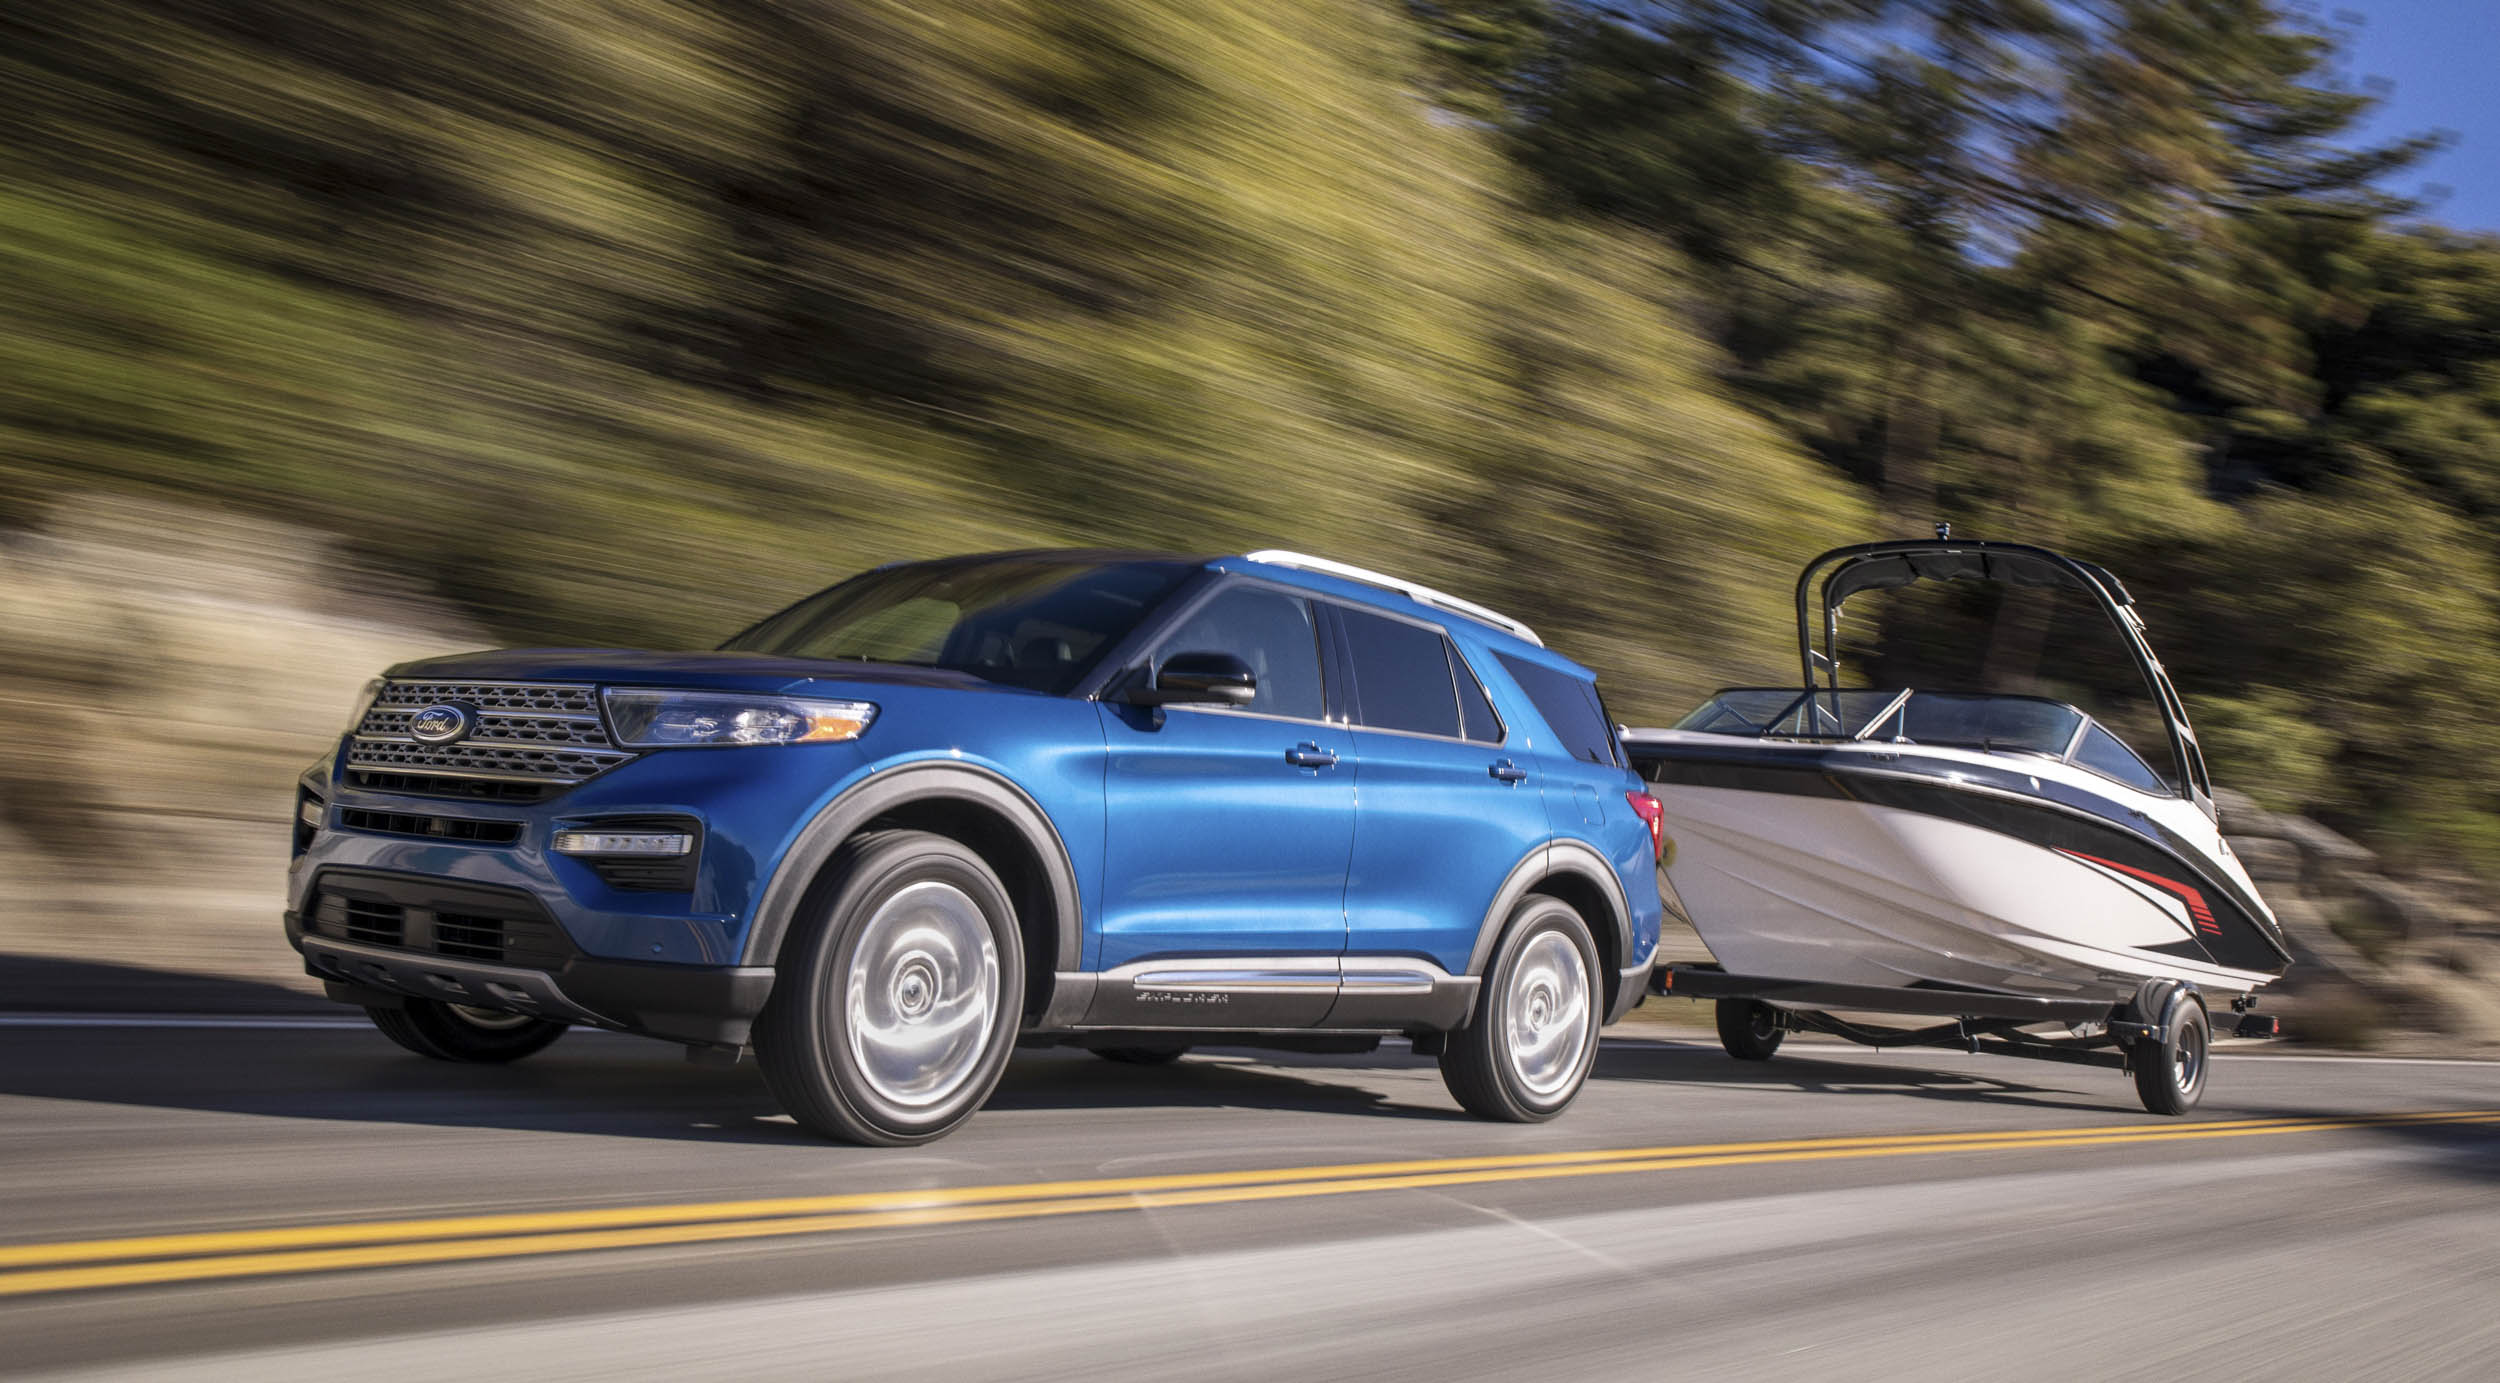 2020 Ford Explorer Hybrid towing a boat